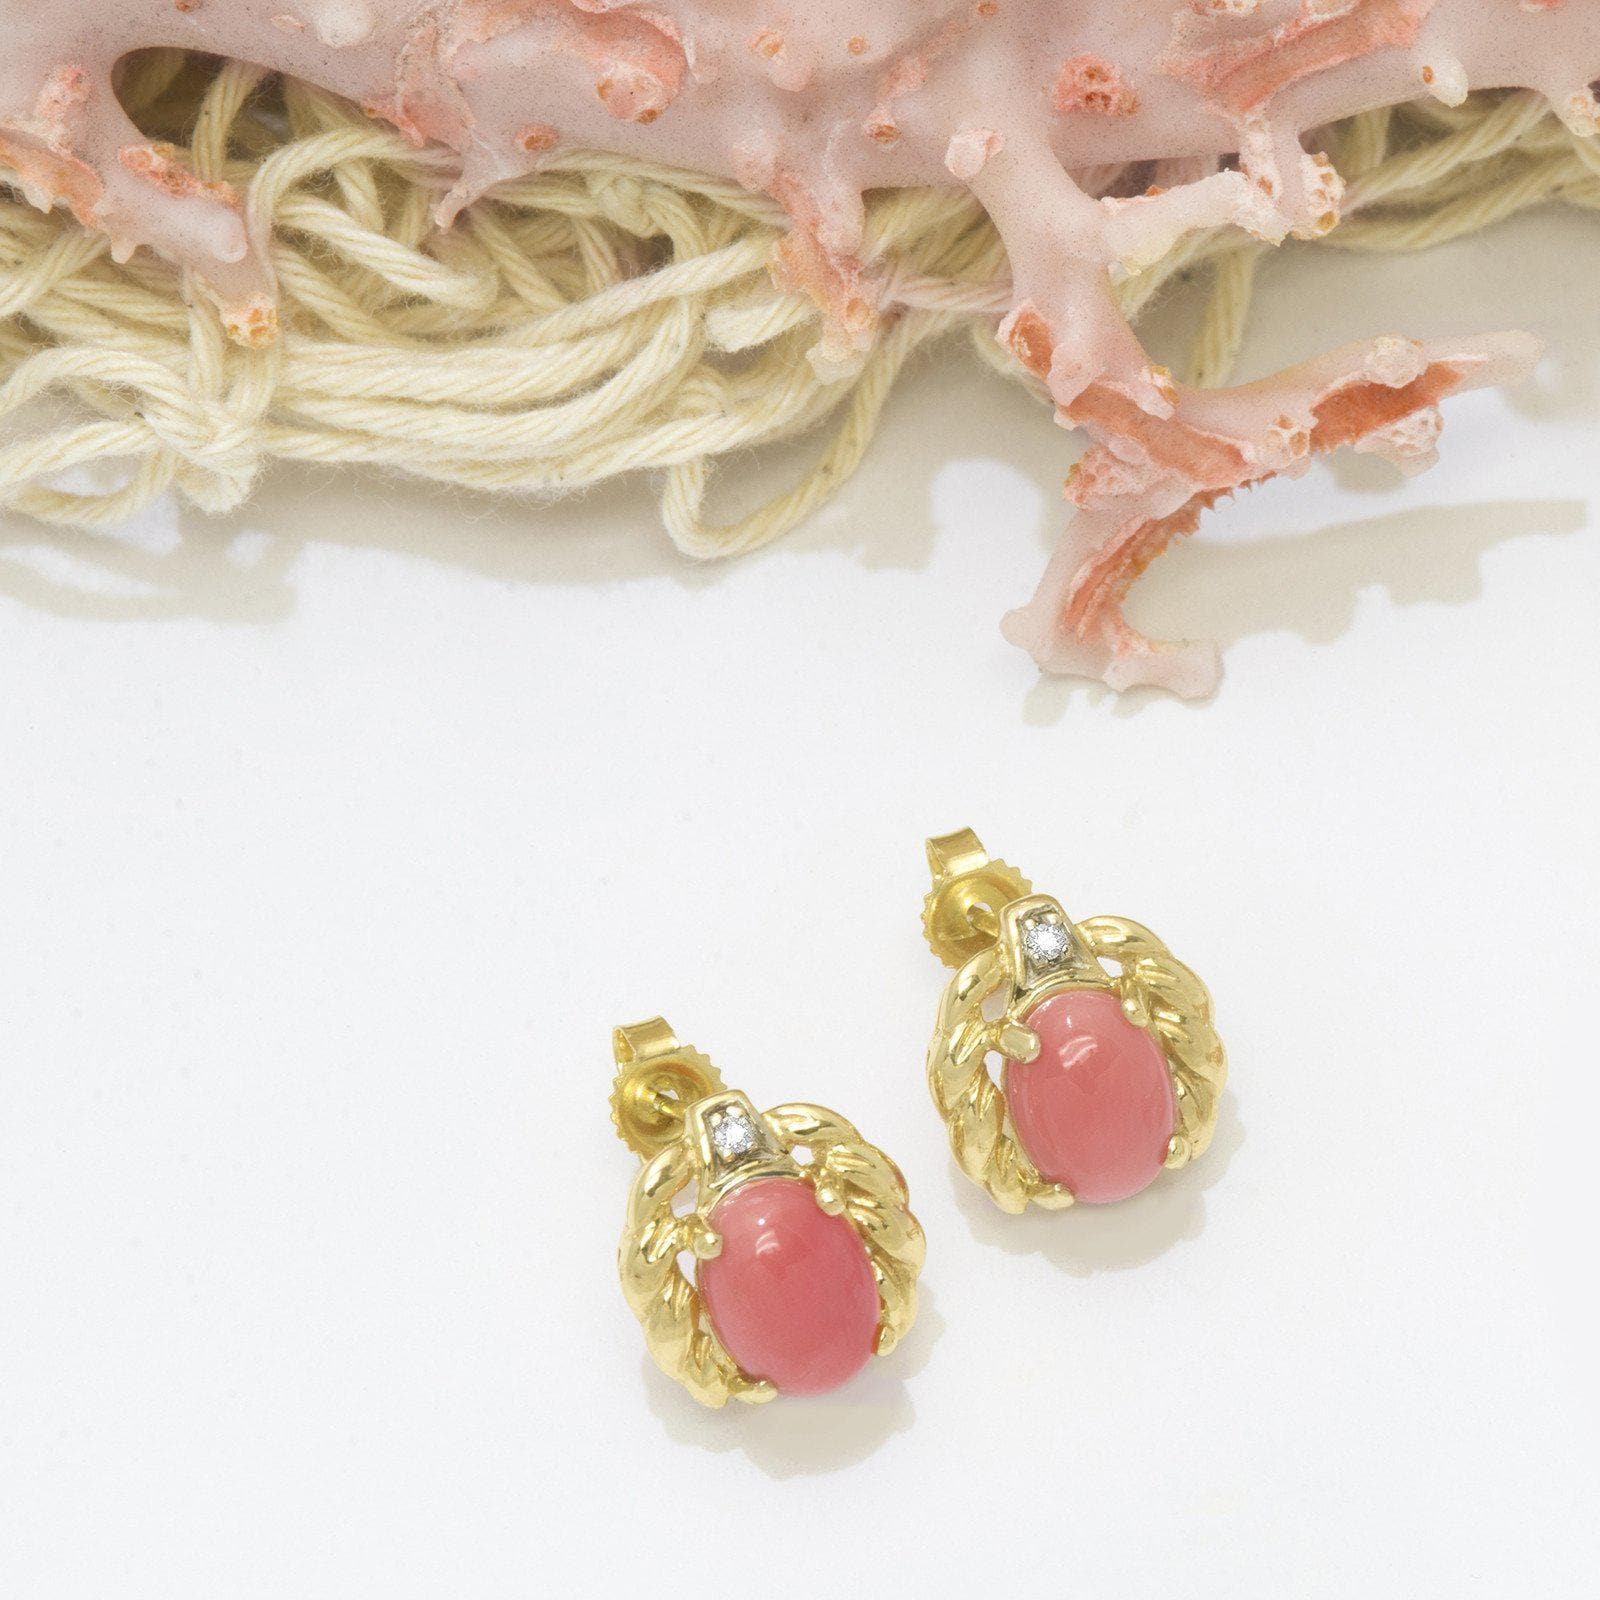 Pink Coral Earrings with Diamonds in 14K Yellow Gold